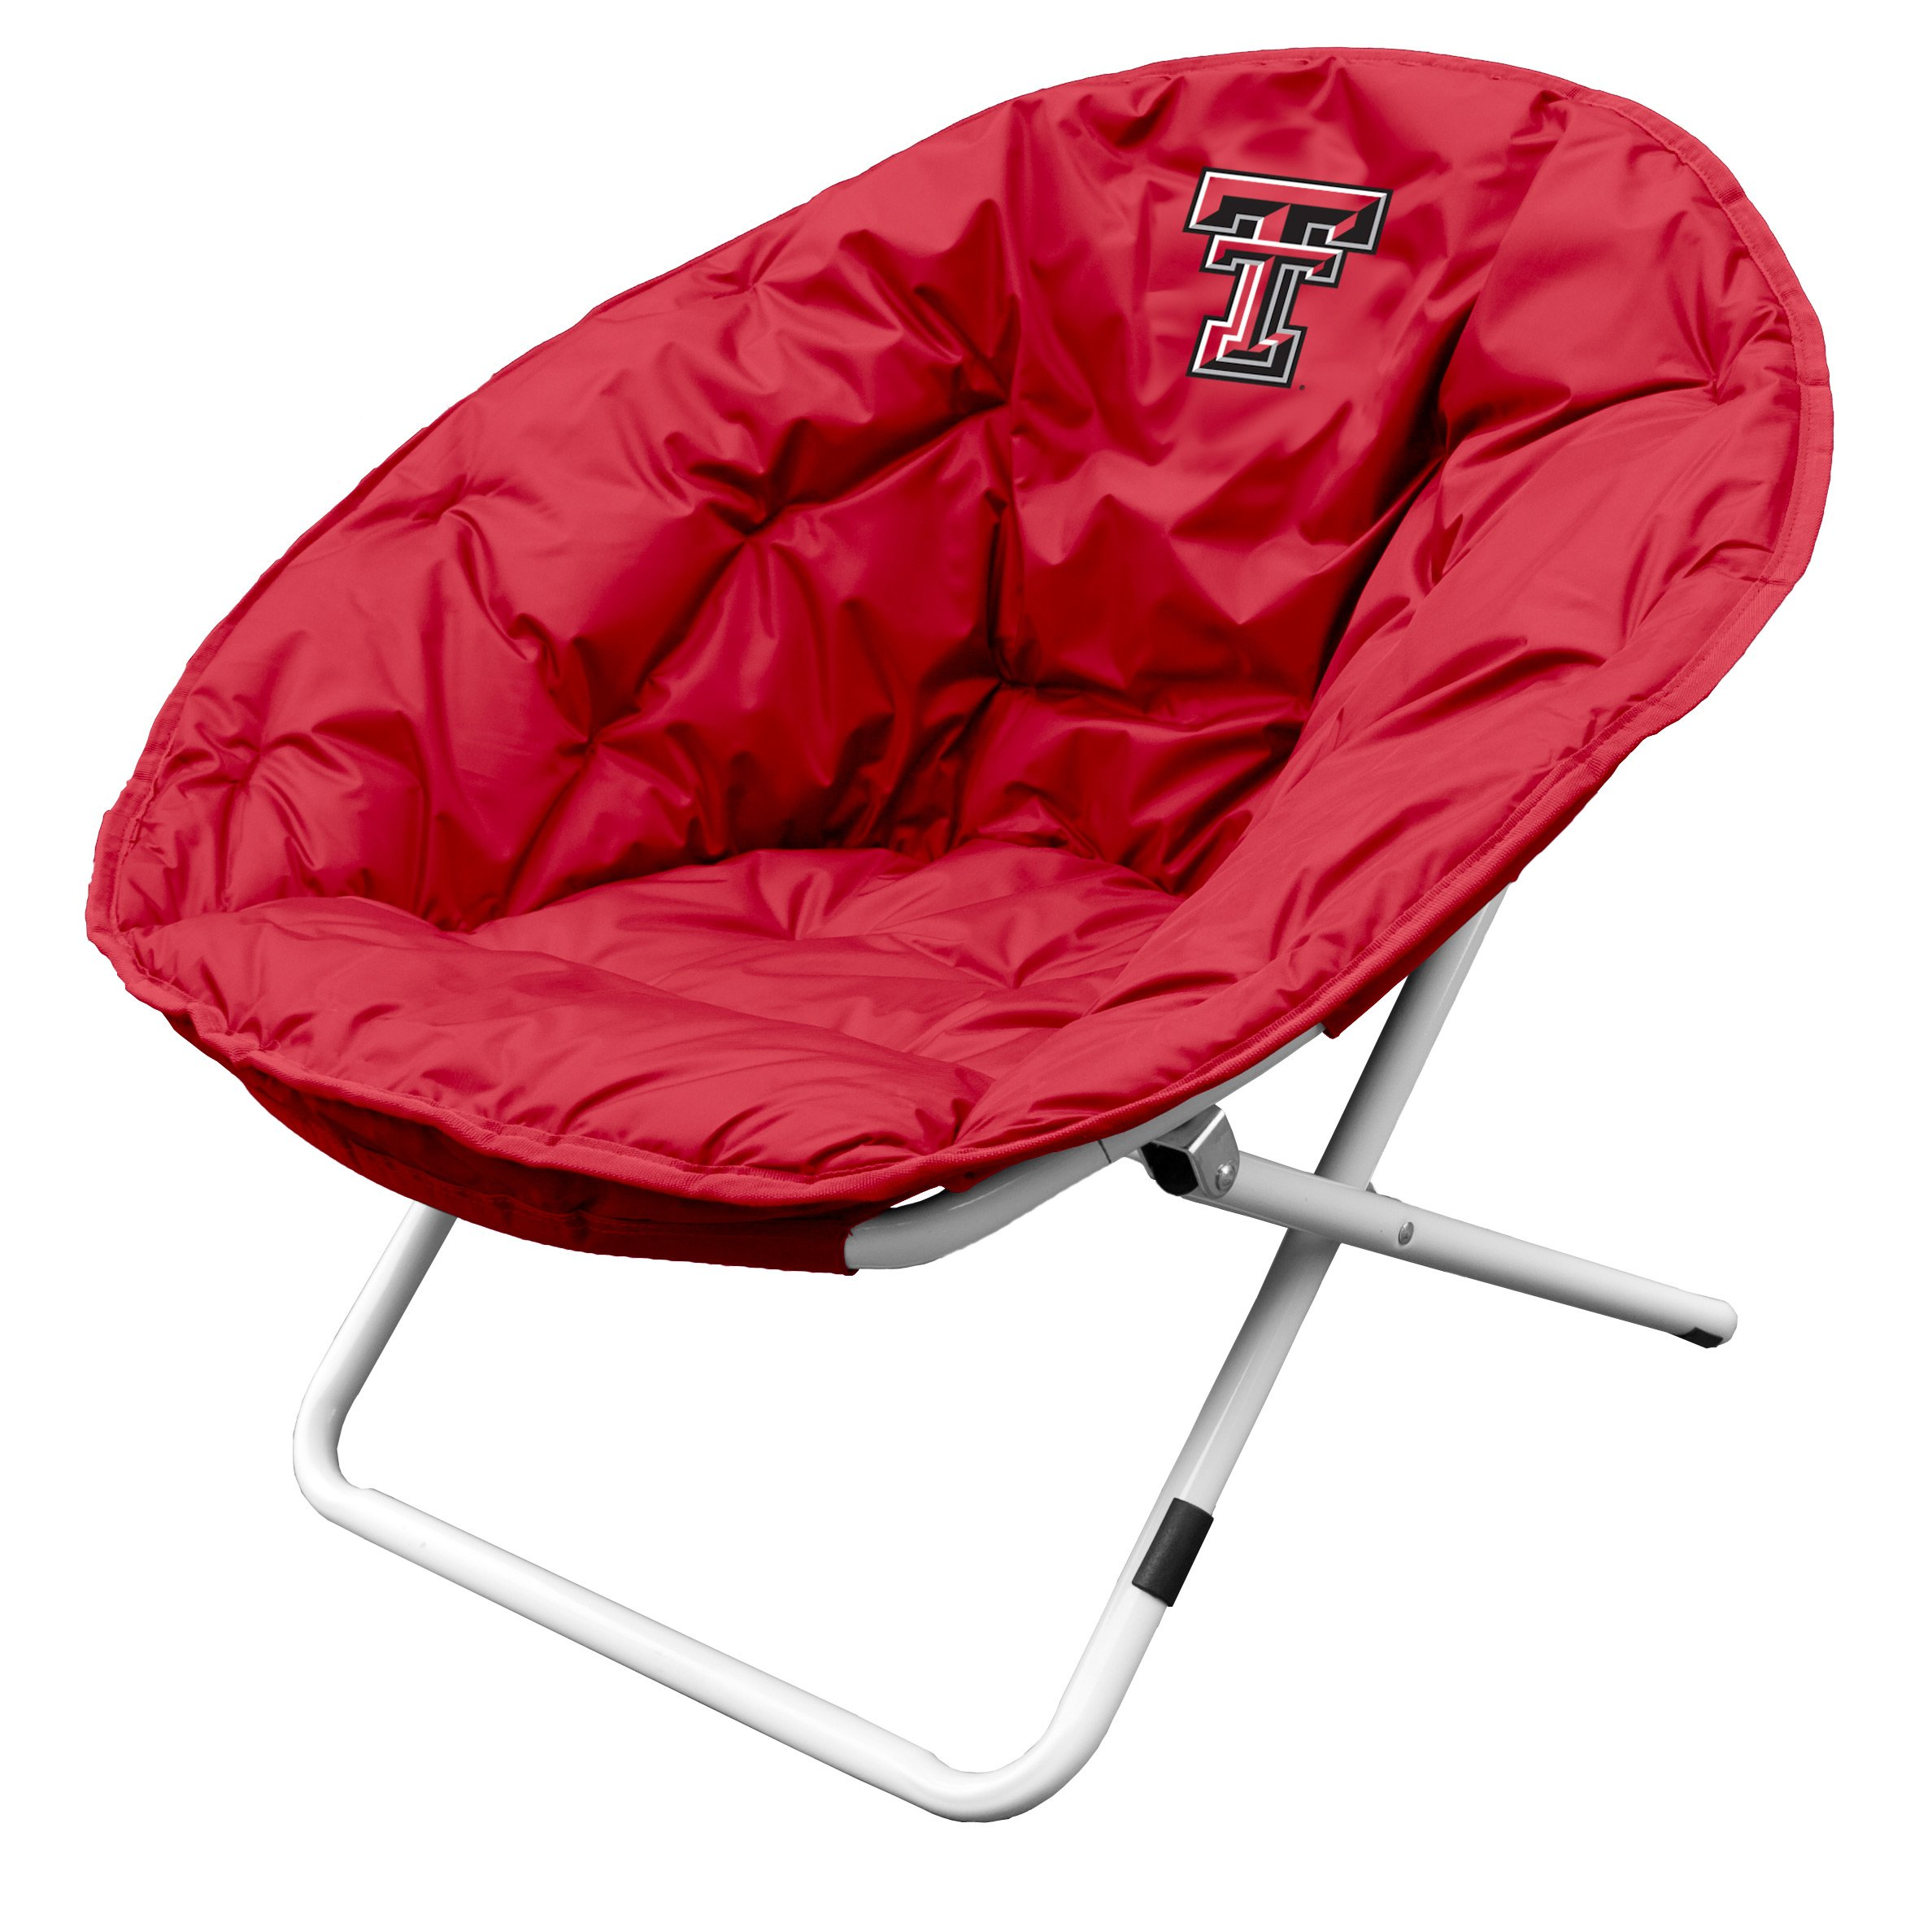 Texas Tech Red Raiders Sphere Chair by Logo Brands (Image #1)